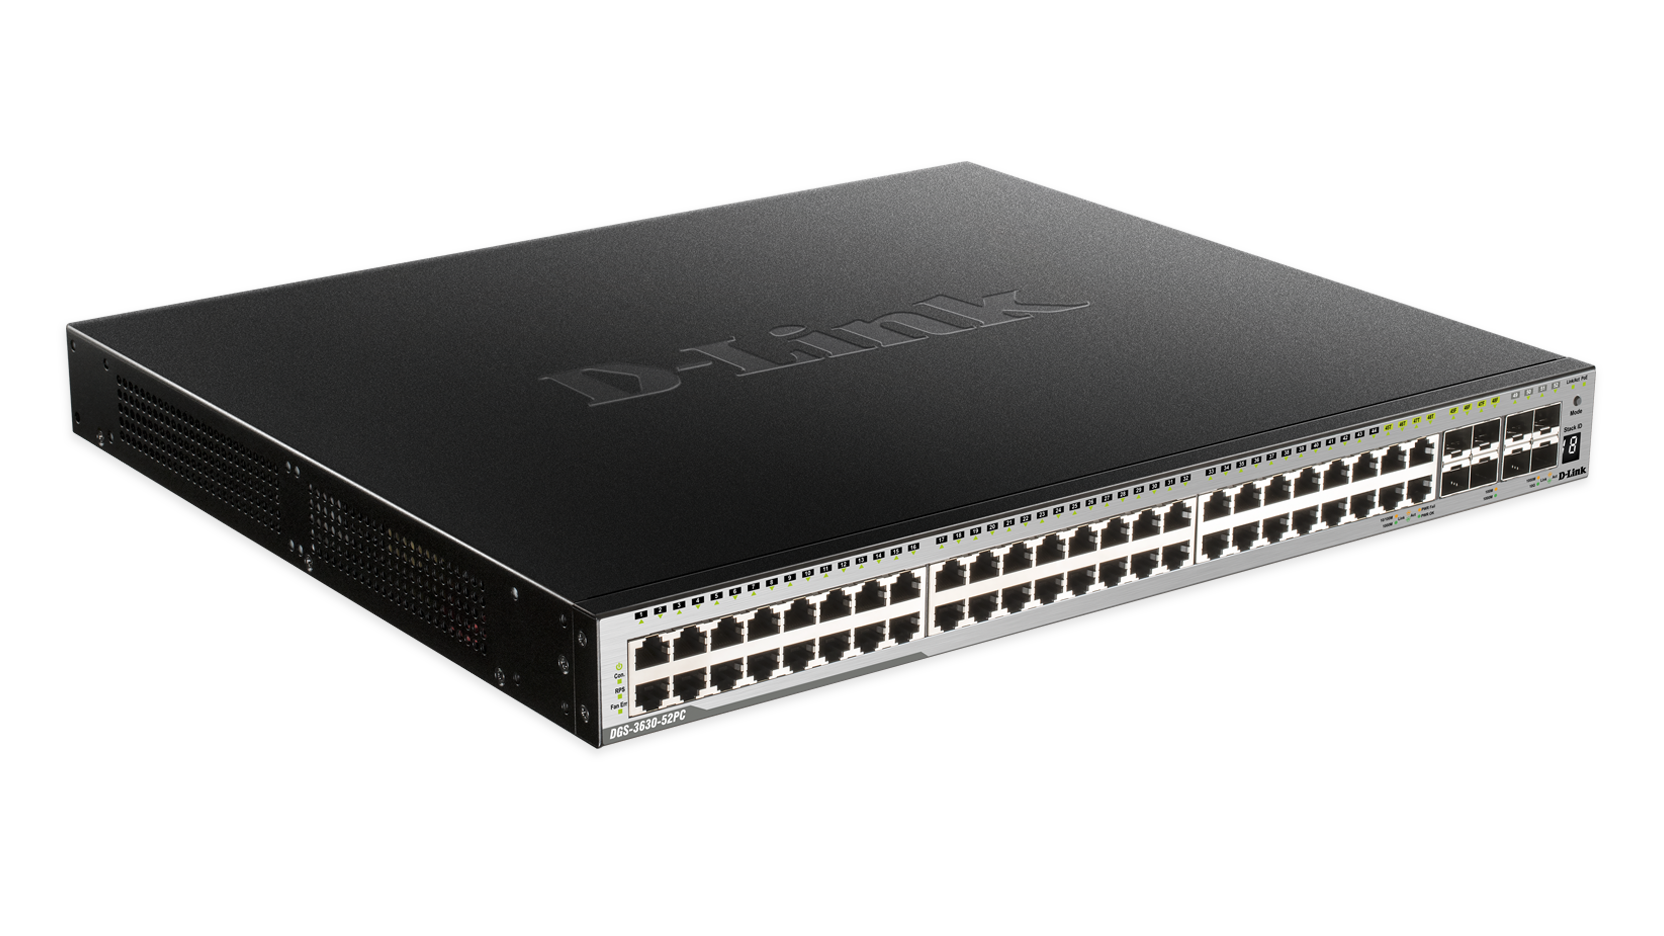 Managed Switches D Link Module With 6port Network Switch And Cable Distribution 52 Port Layer 3 Stackable Gigabit Poe Including 4 10gbe Ports